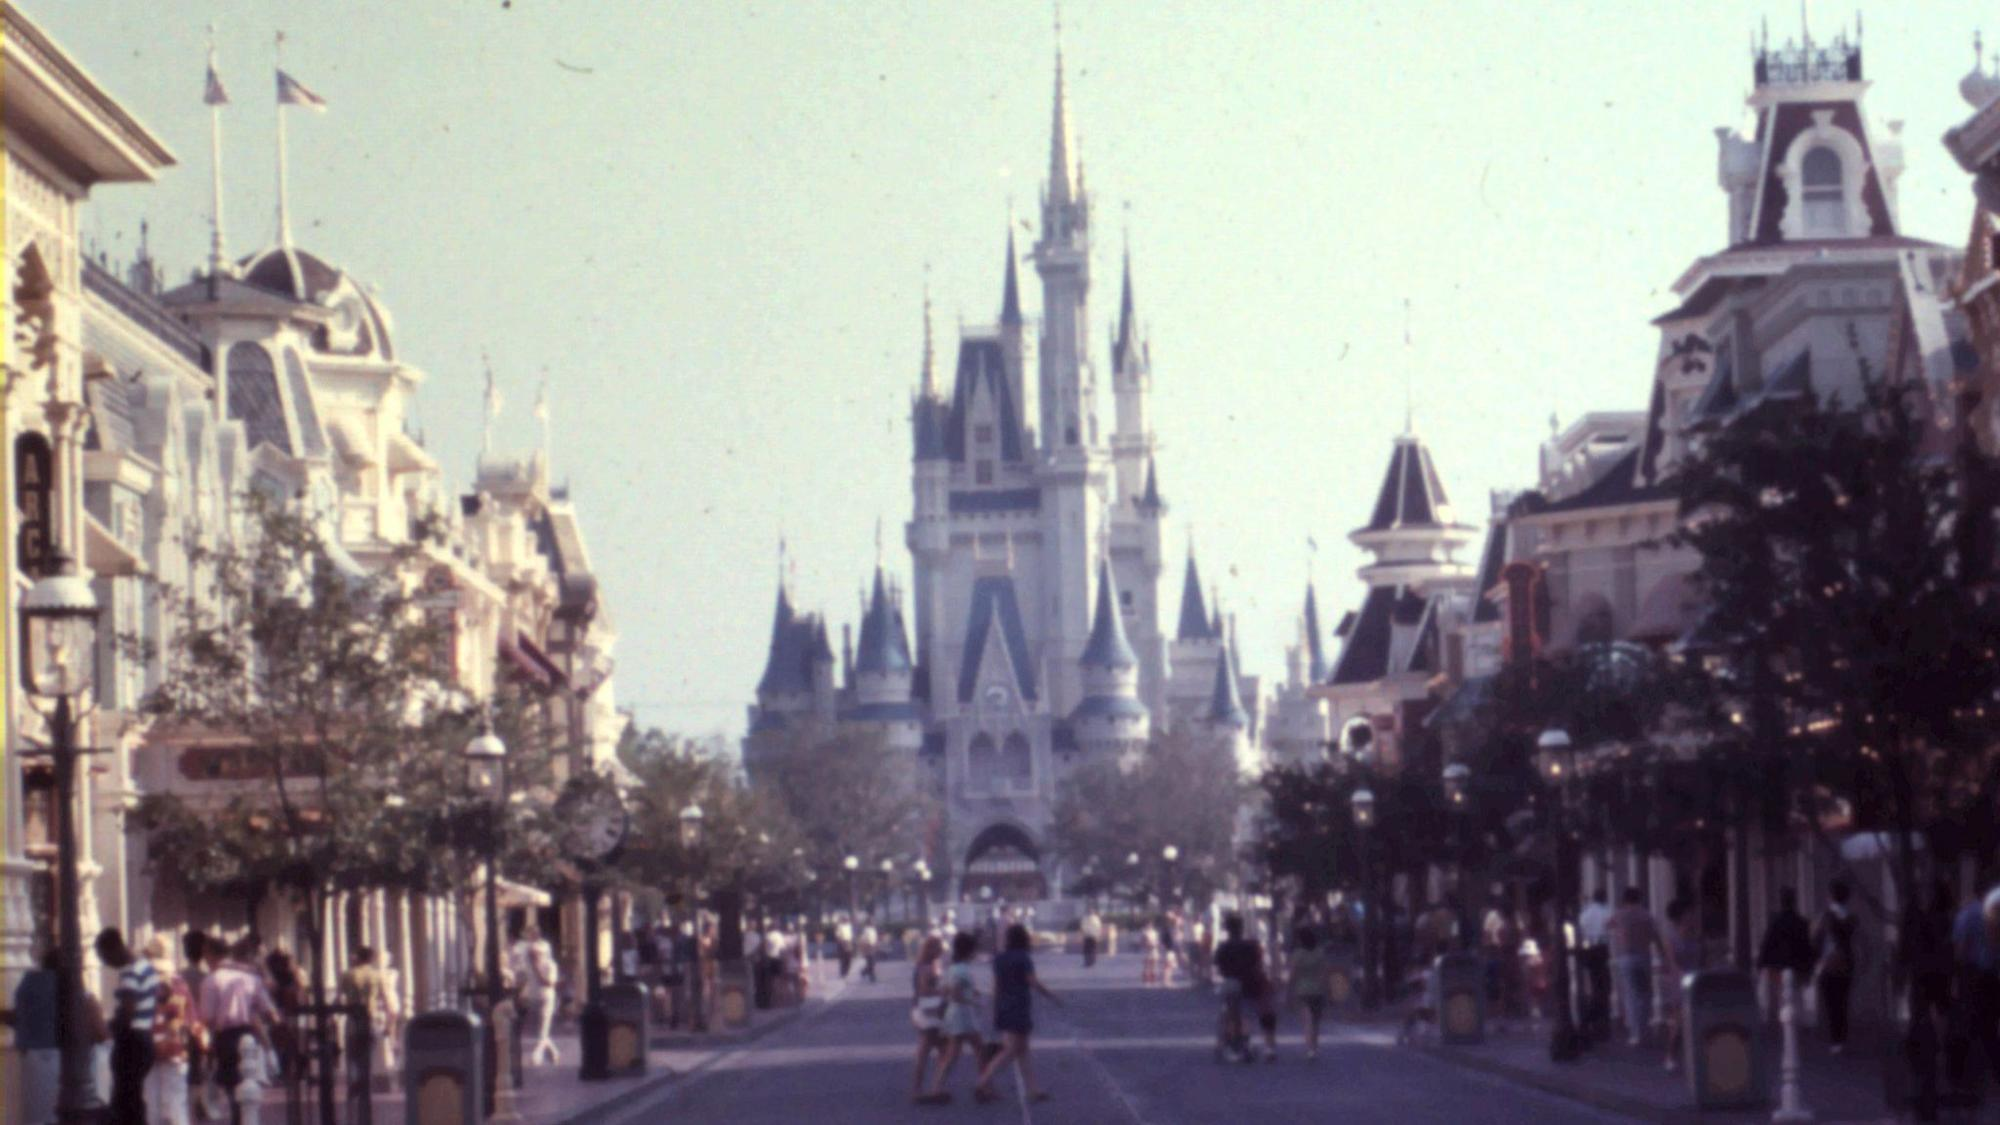 Os-ae-disney-world-1972-pictures-0521